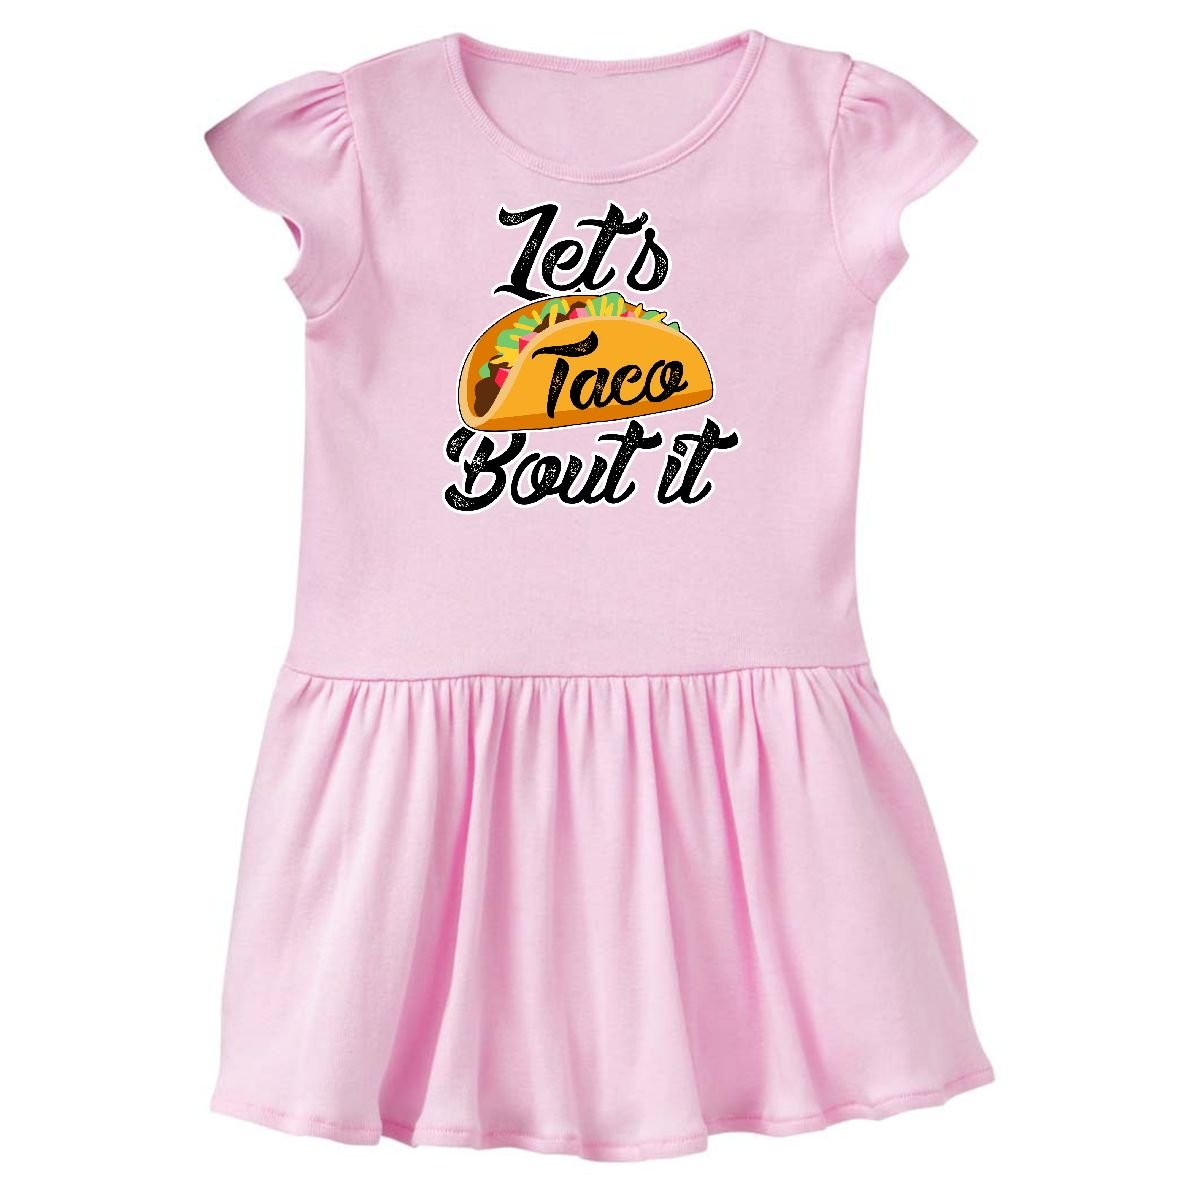 inktastic - Lets Taco Bout it Toddler Dress 14-170556-198